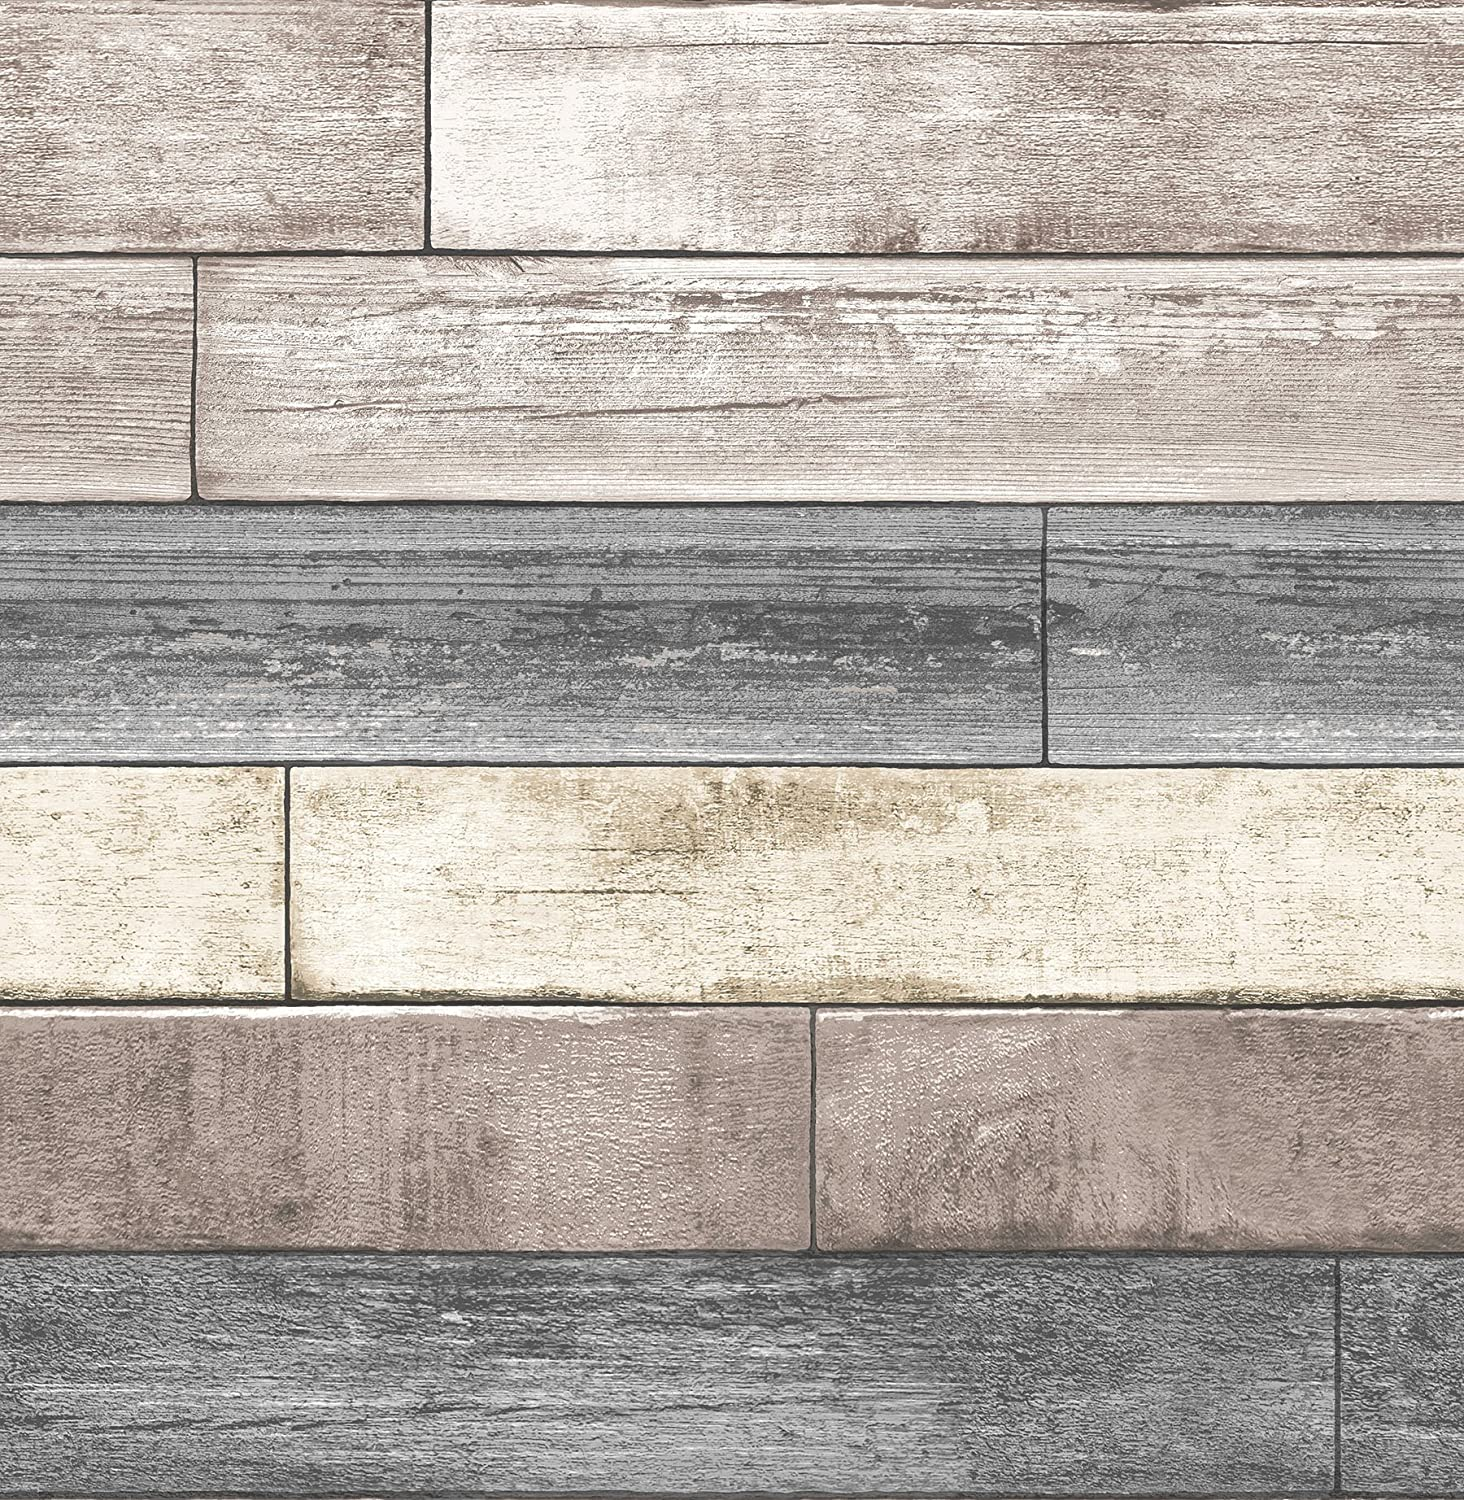 NuWallpaper NU1690 Reclaimed Wood Plank Natural Peel & Stick